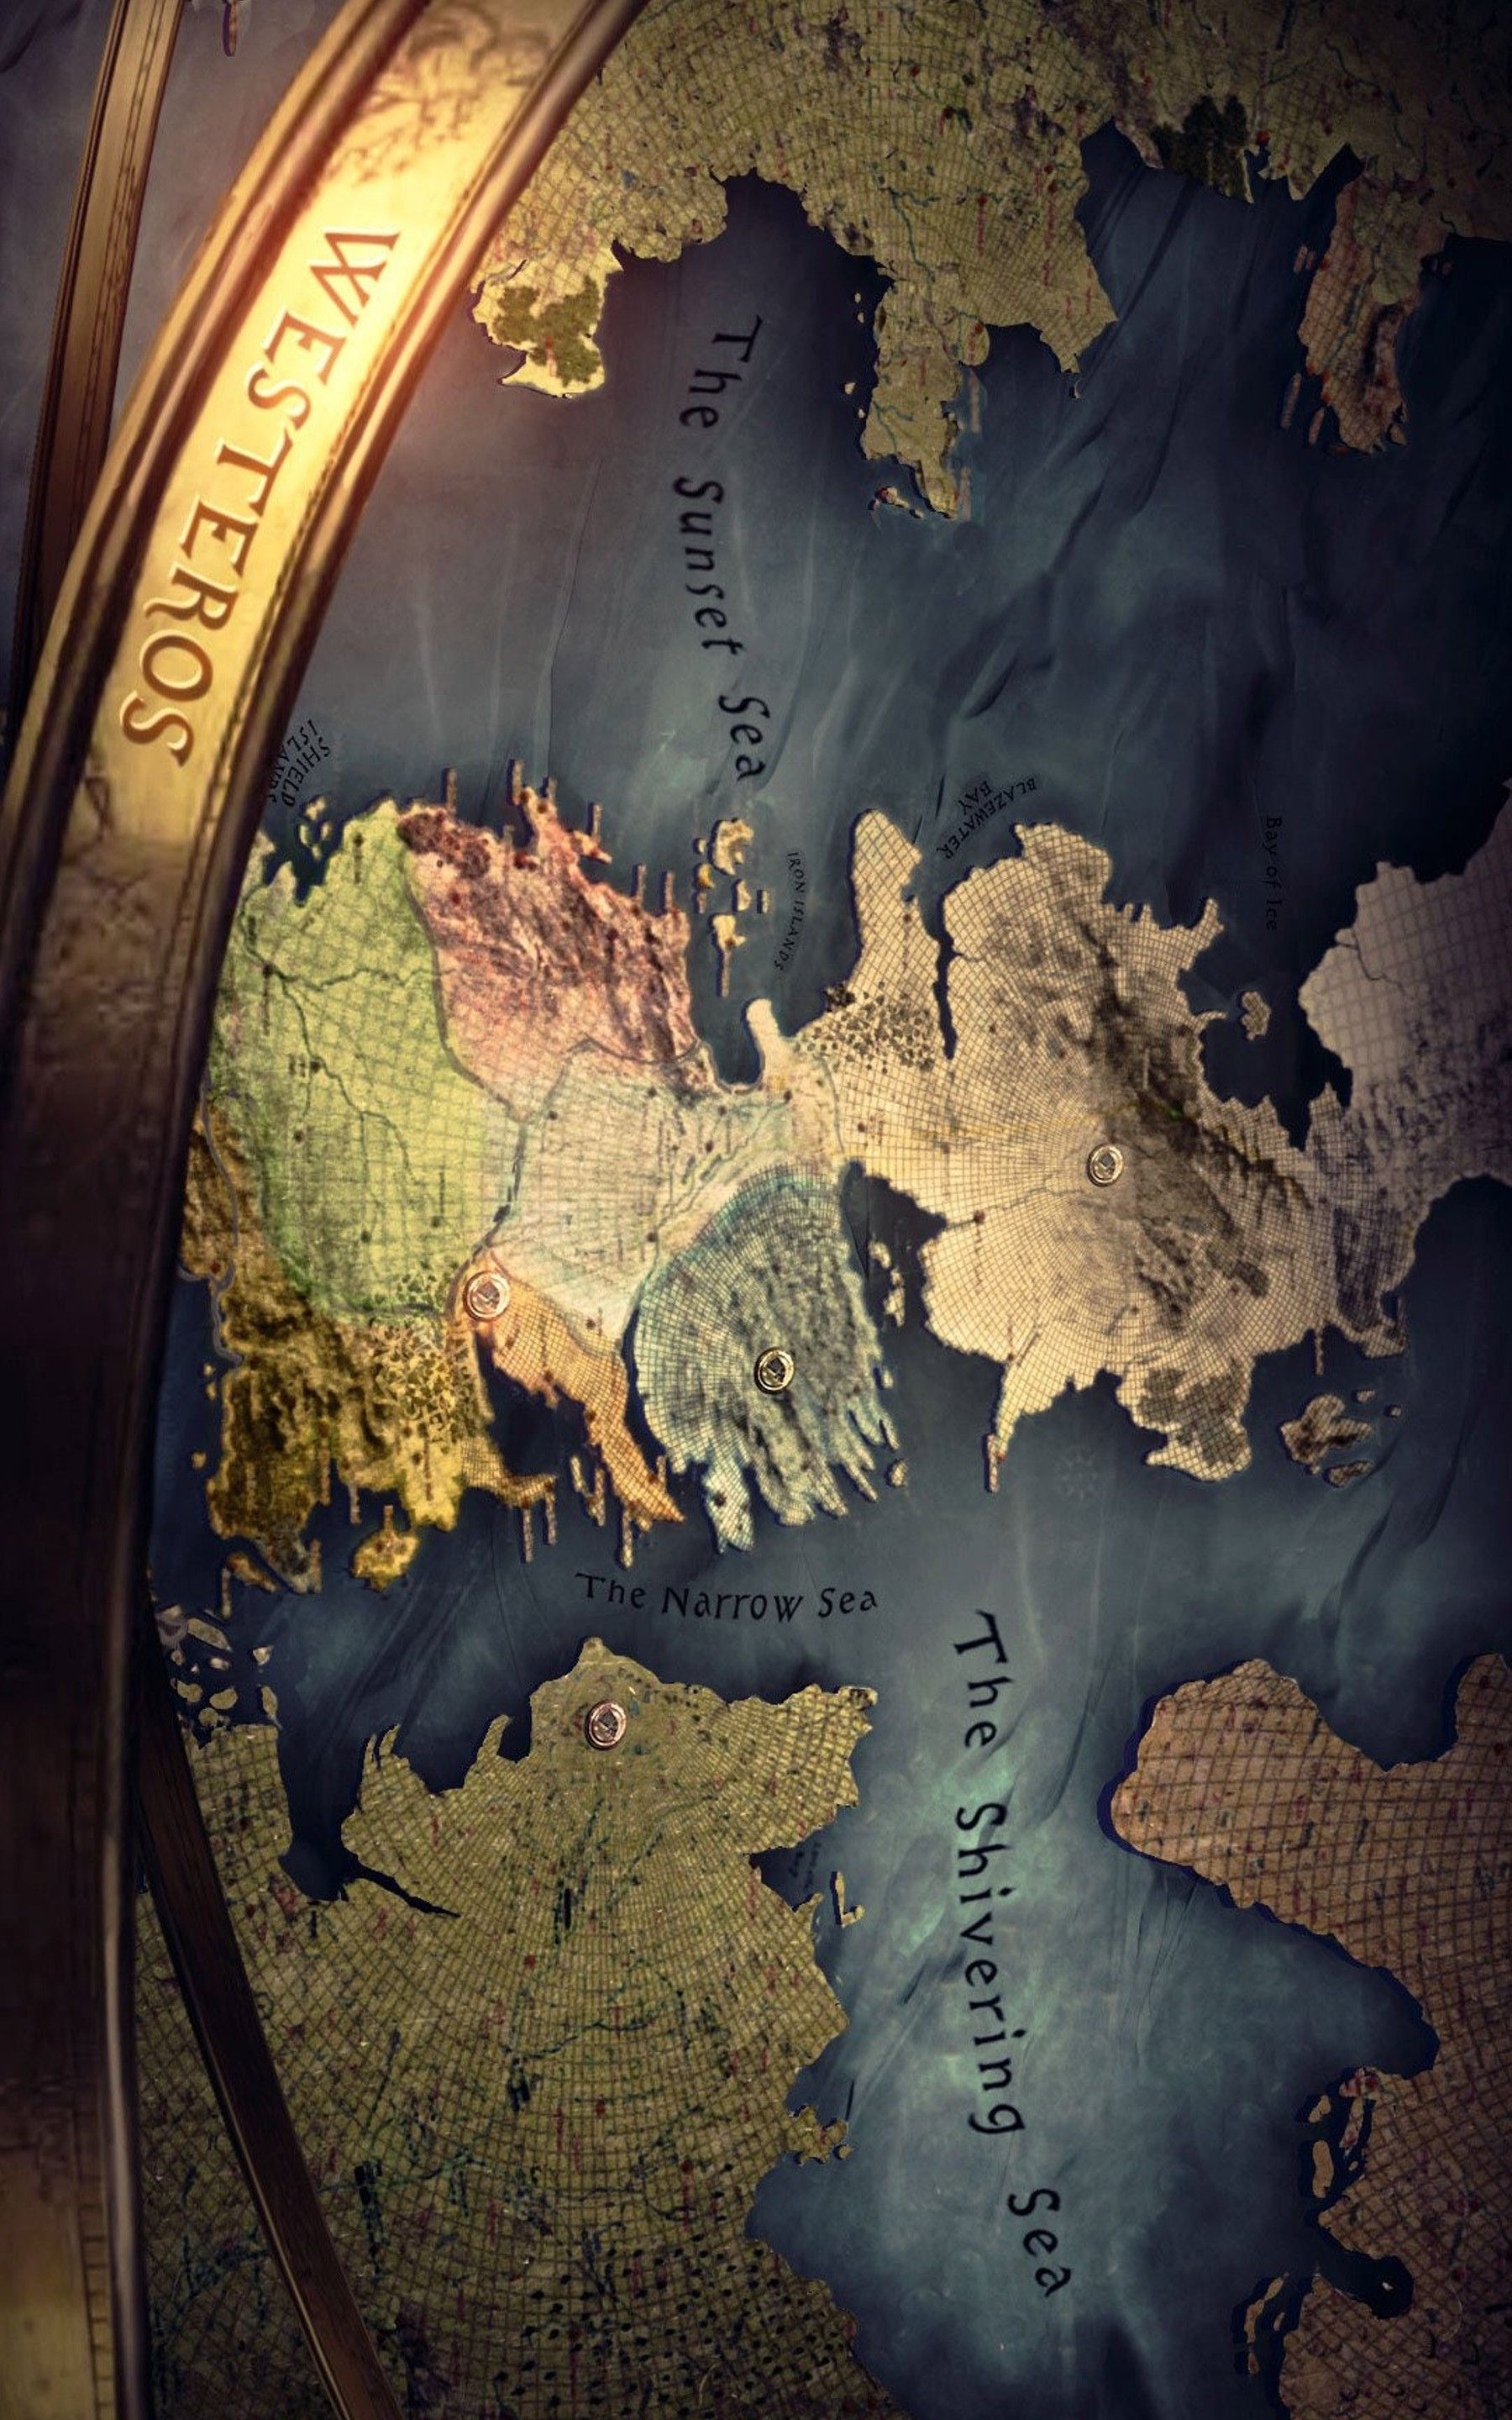 Game Of Thrones Desktop Wallpaper Moviemania Wallpaper Game Of Thrones Game Of Thrones Map